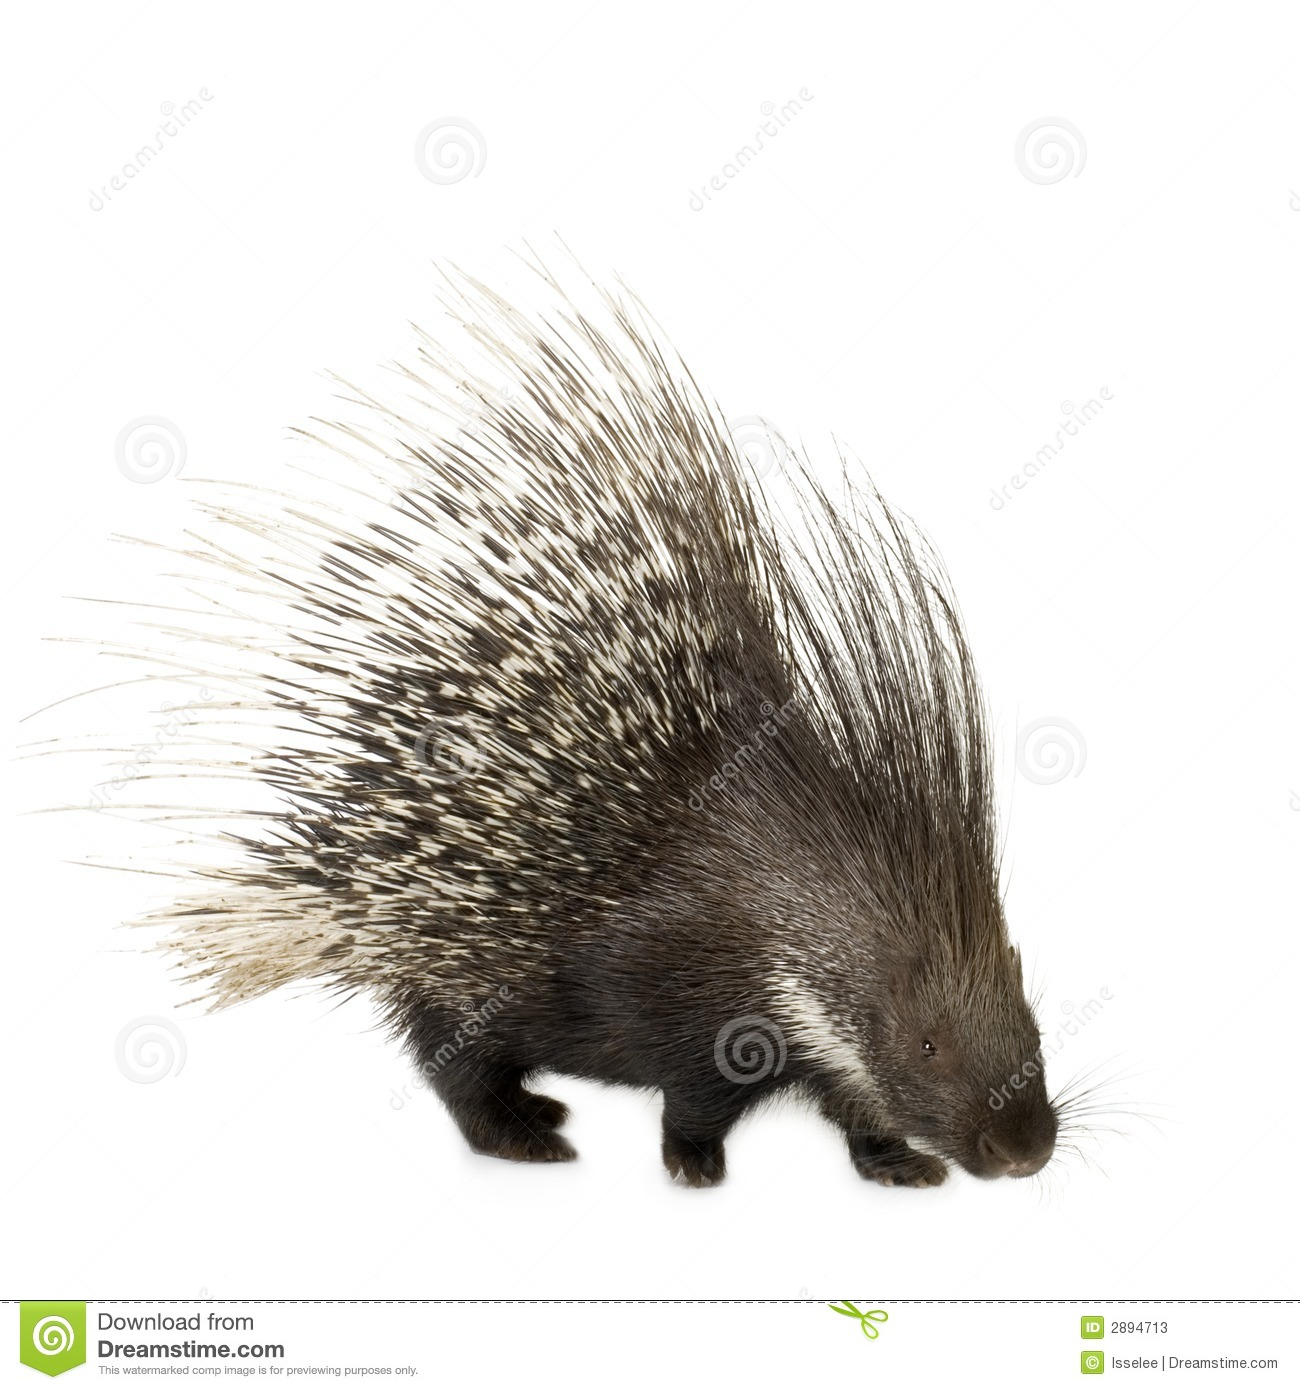 wild hog map with Stock Photos Porcupine Image2894713 on BrownCreeperWinterMap moreover Royalty Free Stock Photo Warthog Running Hog Image26848495 further Stock Photos Porcupine Image2894713 additionally Hedgehogs moreover File Canis lupus dingo  Fraser Island.